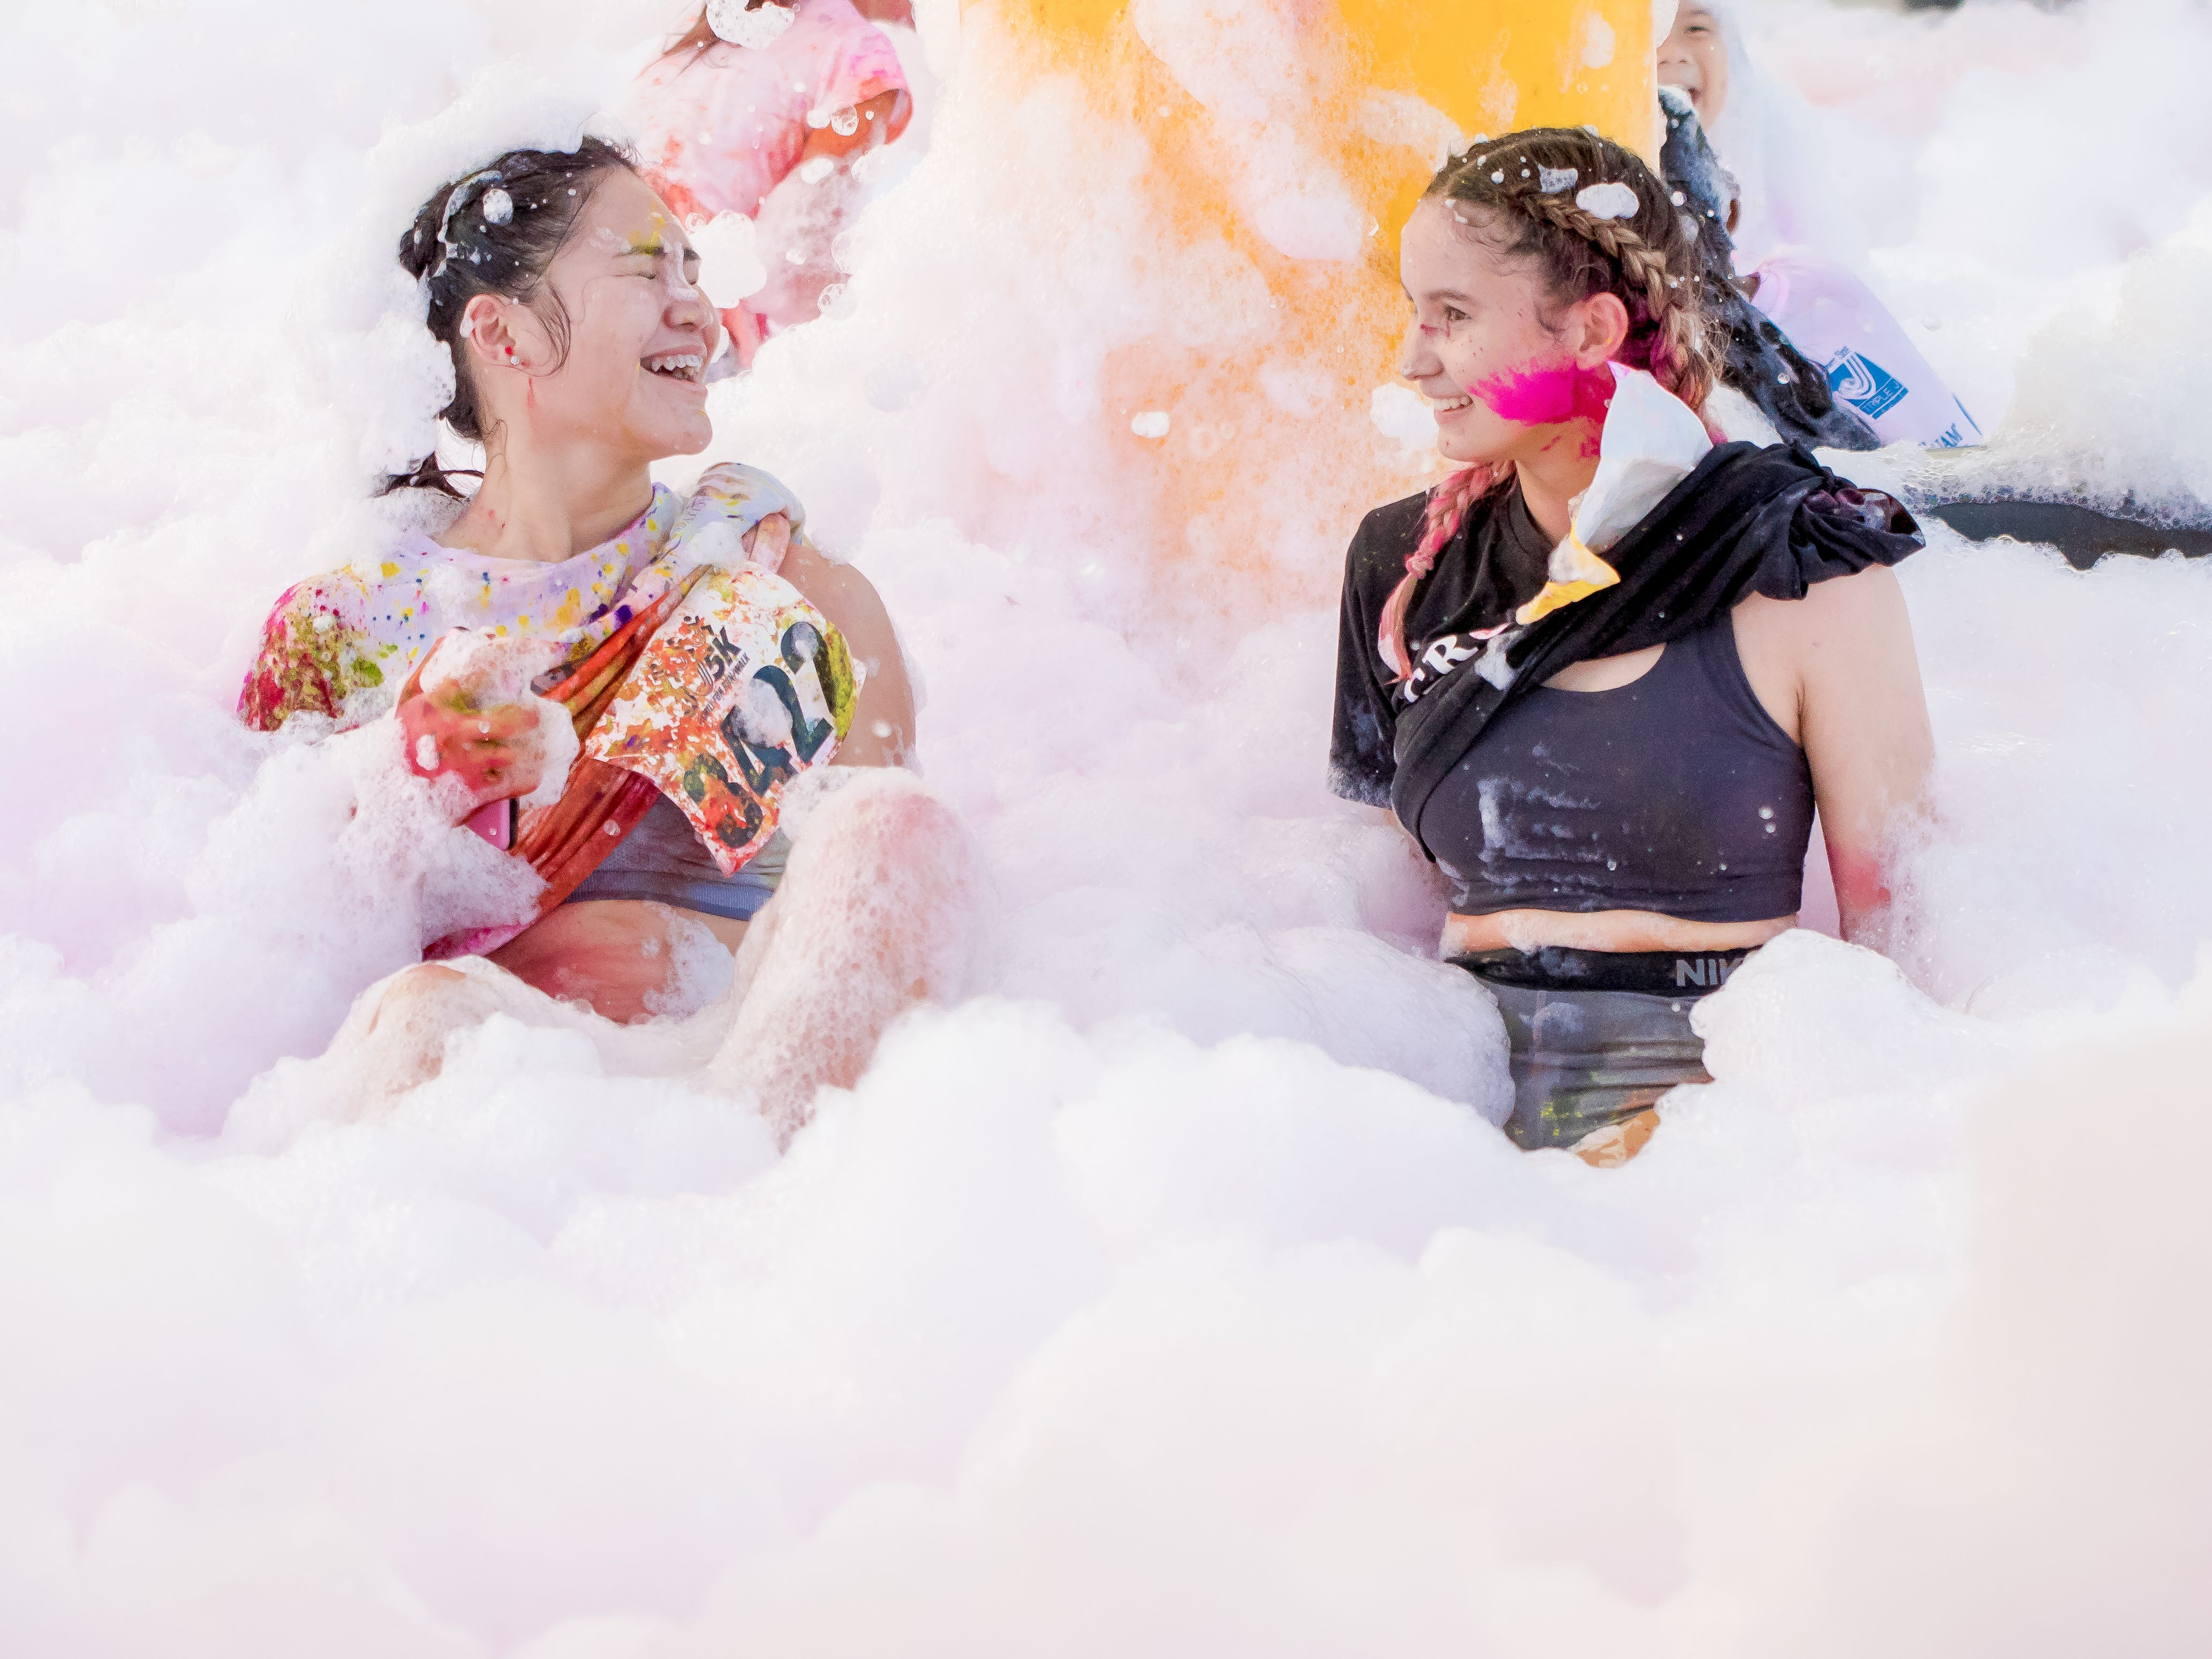 """Angeline del Carmen and Marina Flores soak in bubble foam during the 13th Annual Triple J Family 10K/5K Run themed the """"Bubble Color Run"""" held  at Tripple J Complex in Tamuning on Nov.17.Virgilio Valencia /For Pacific Daily News"""